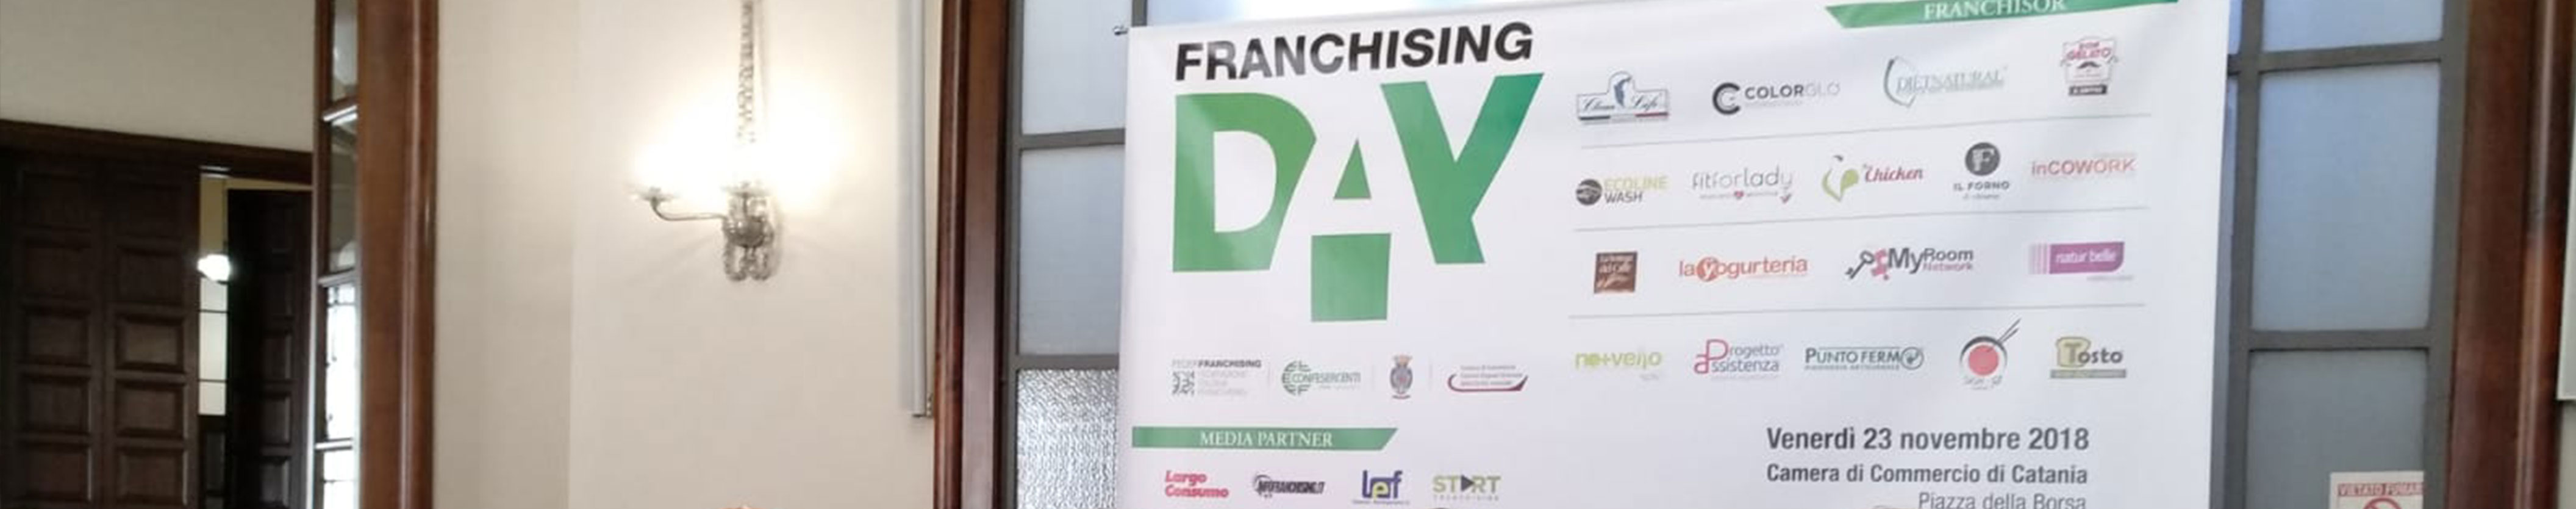 Franchising Day Catania